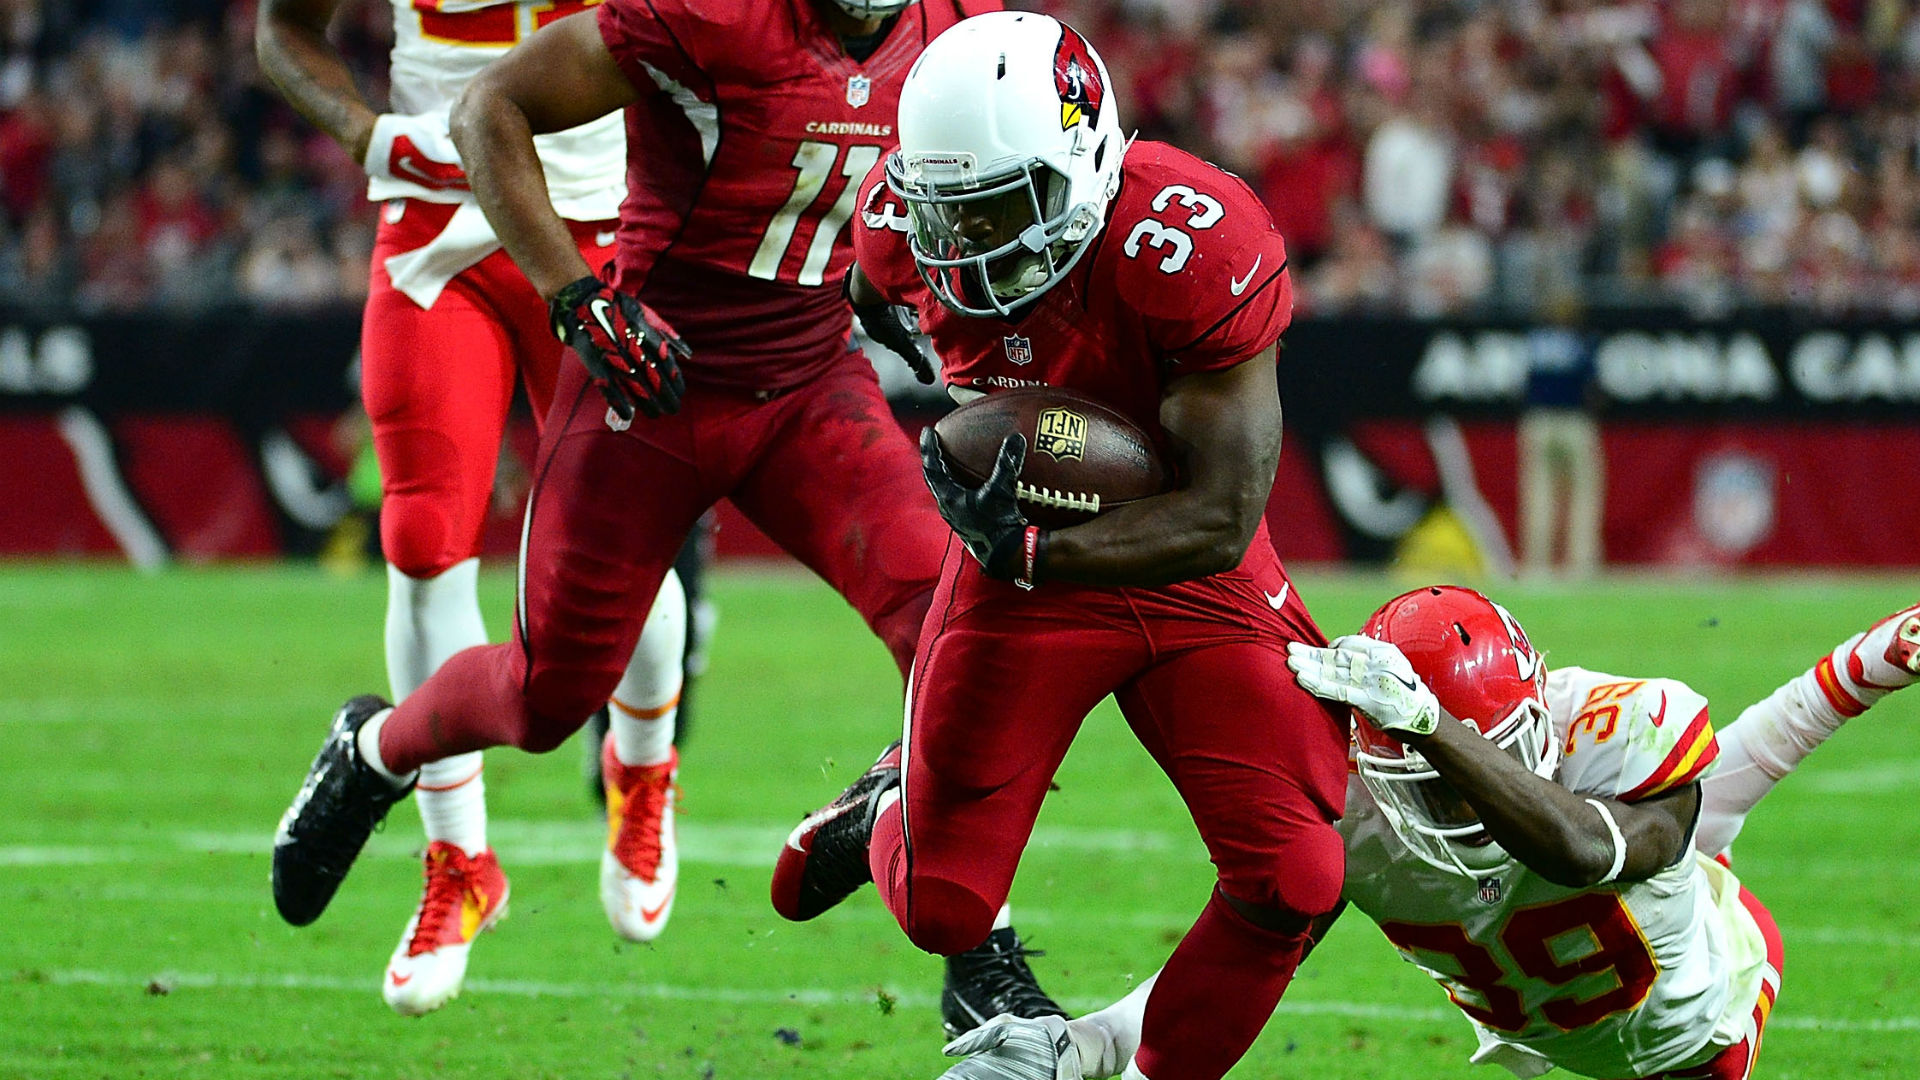 Cardinals vs. Rams betting preview and pick – Line moves in St. Louis' direction